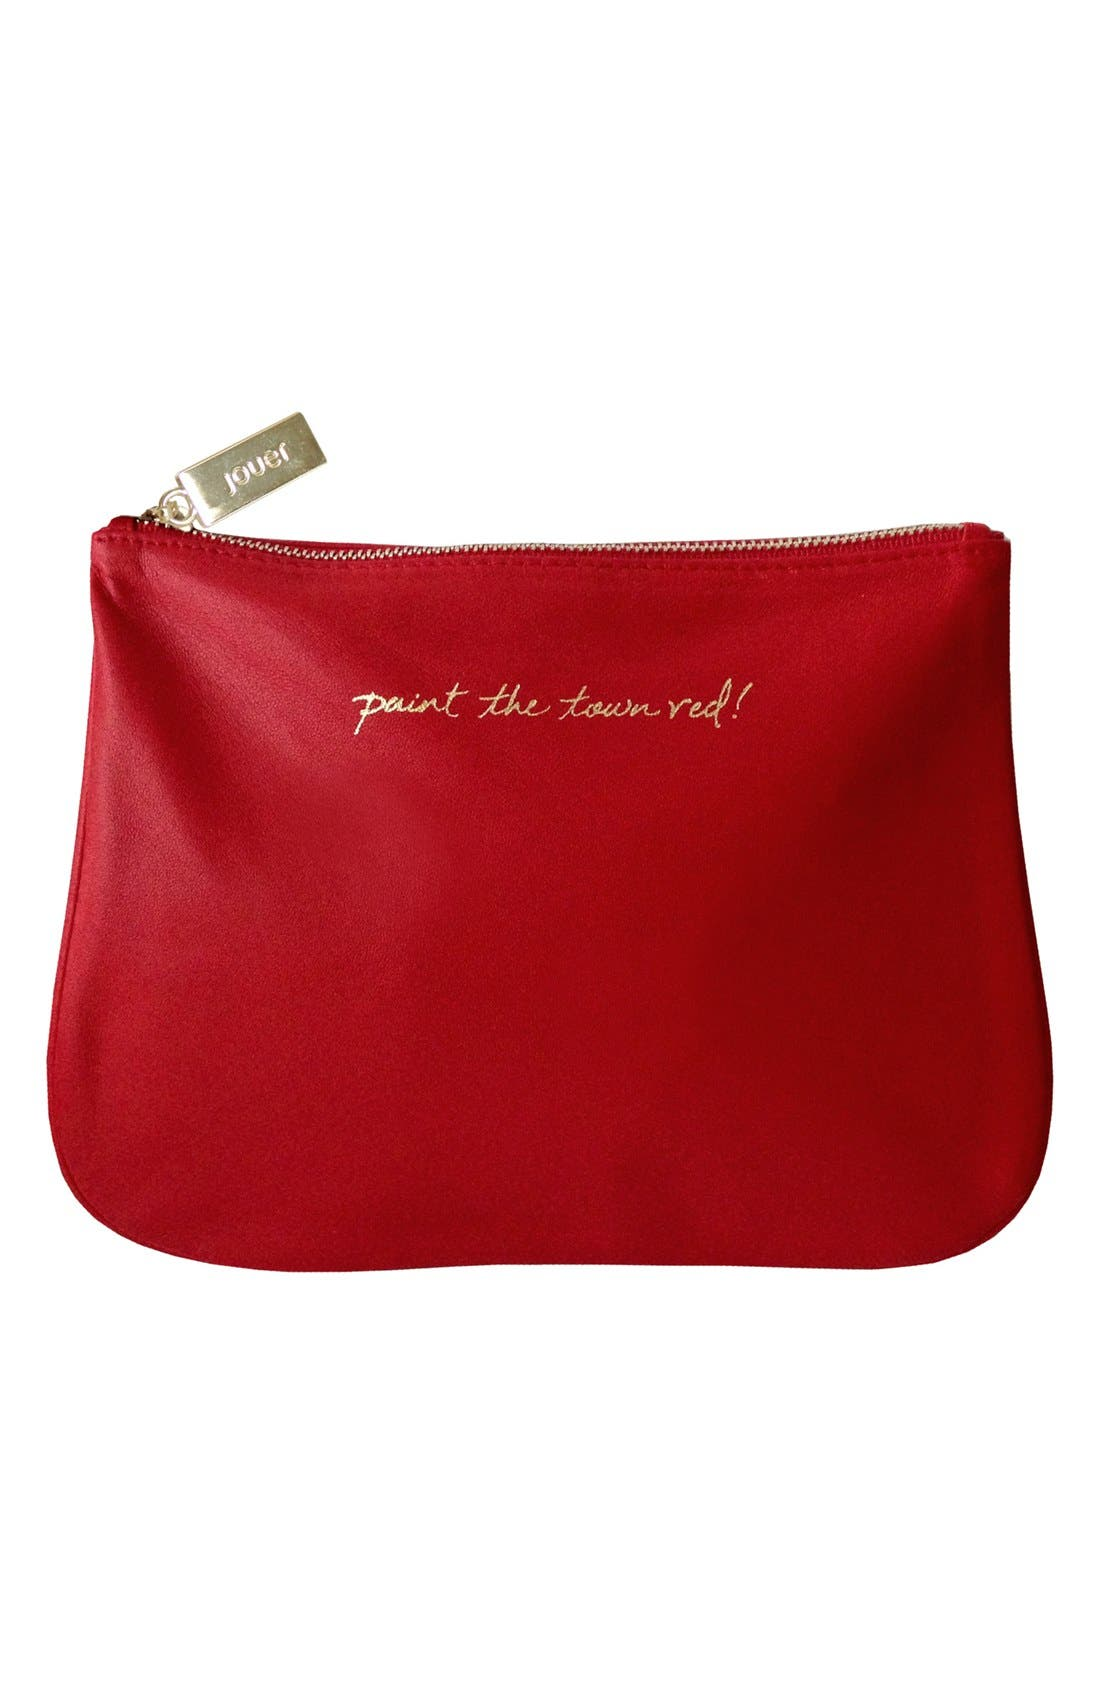 'IT - Paint the Town Red' Cosmetics Bag,                             Main thumbnail 1, color,